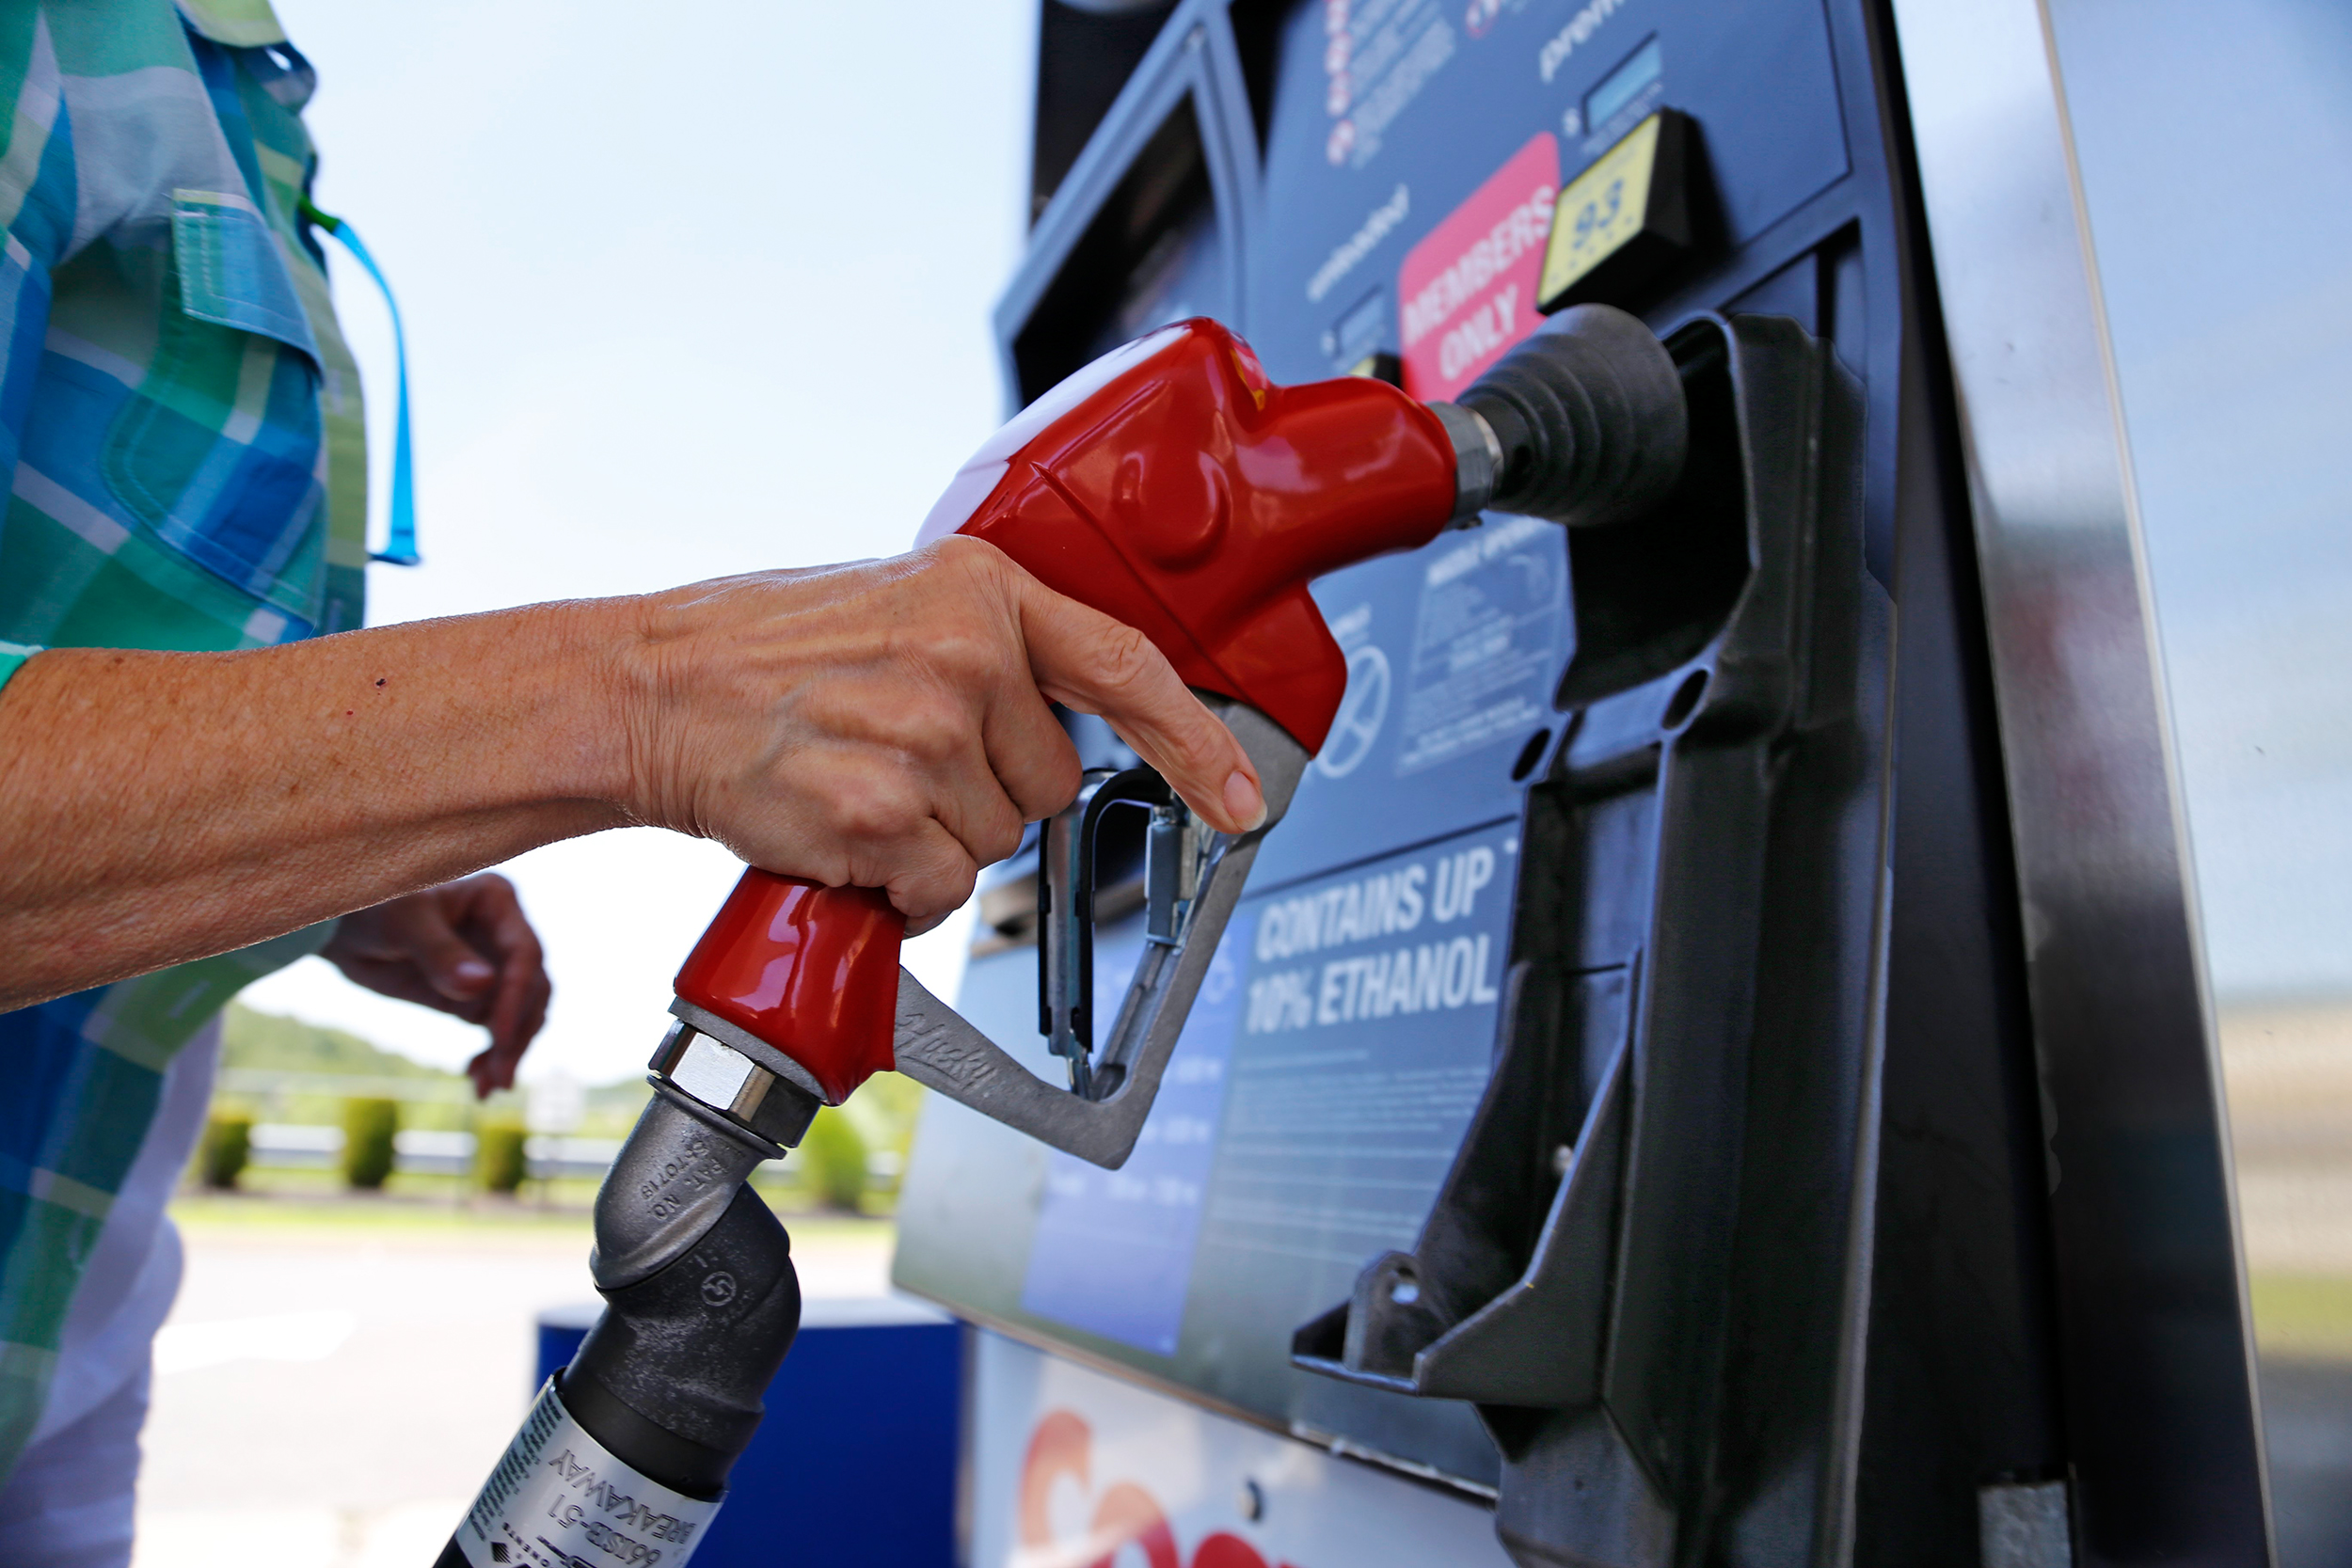 Are Gas Rewards Cards a Good Deal? That Depends on How You Use Them